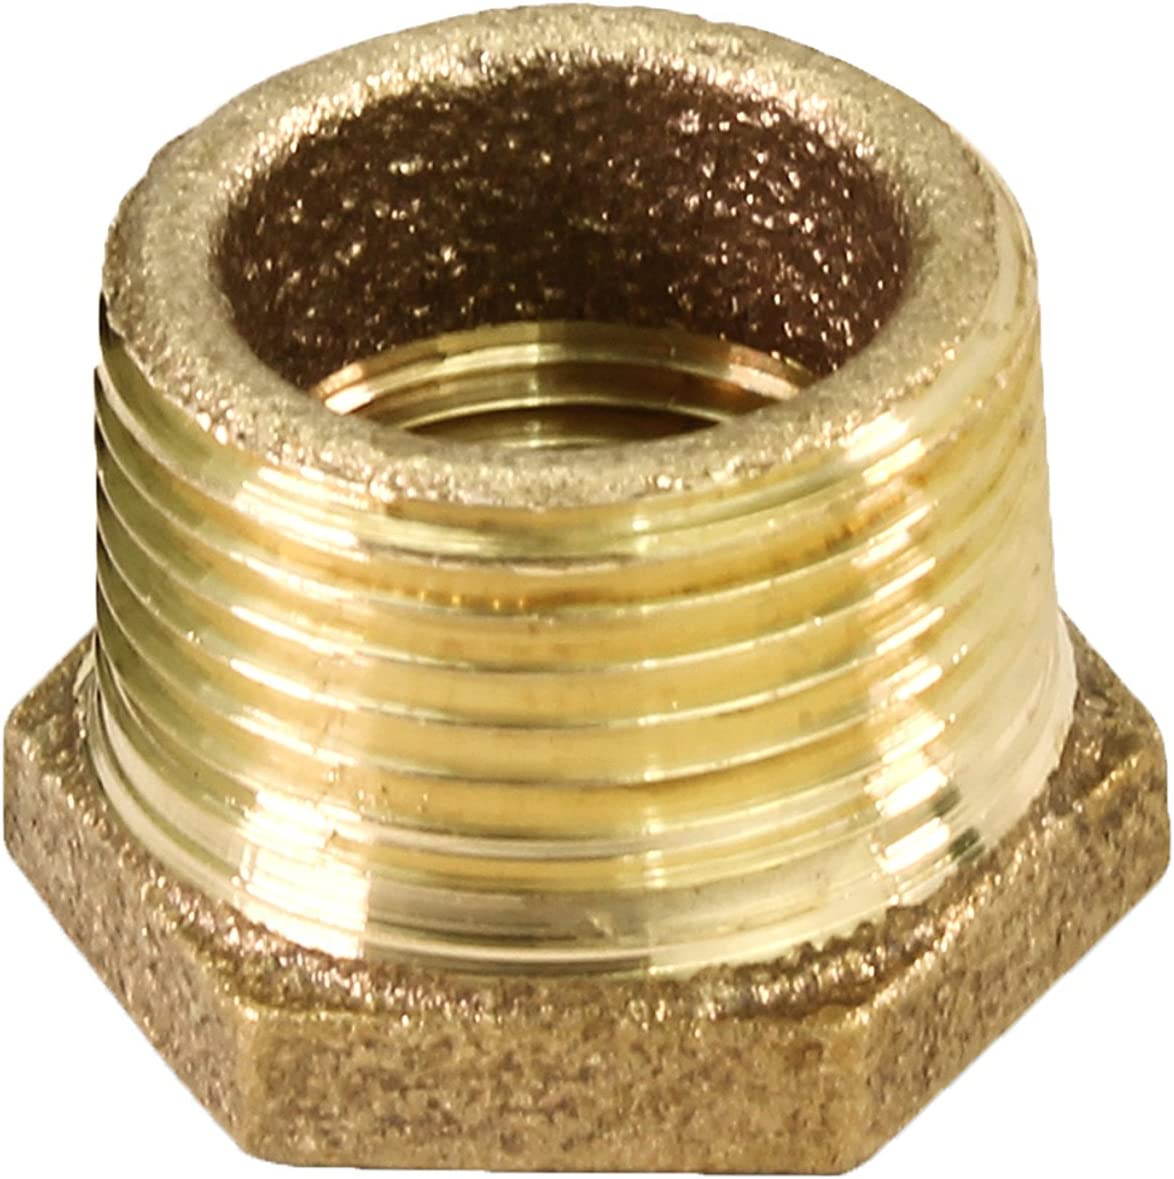 Brass Construction Everflow BRBU0140-NL 1//4 Inch Male NPT X 1//8 Inch Female NPT Brass Lead Free Bushing Higher Corrosion Resistance Economical /& Easy to Install Fitting with Hexagonal Head